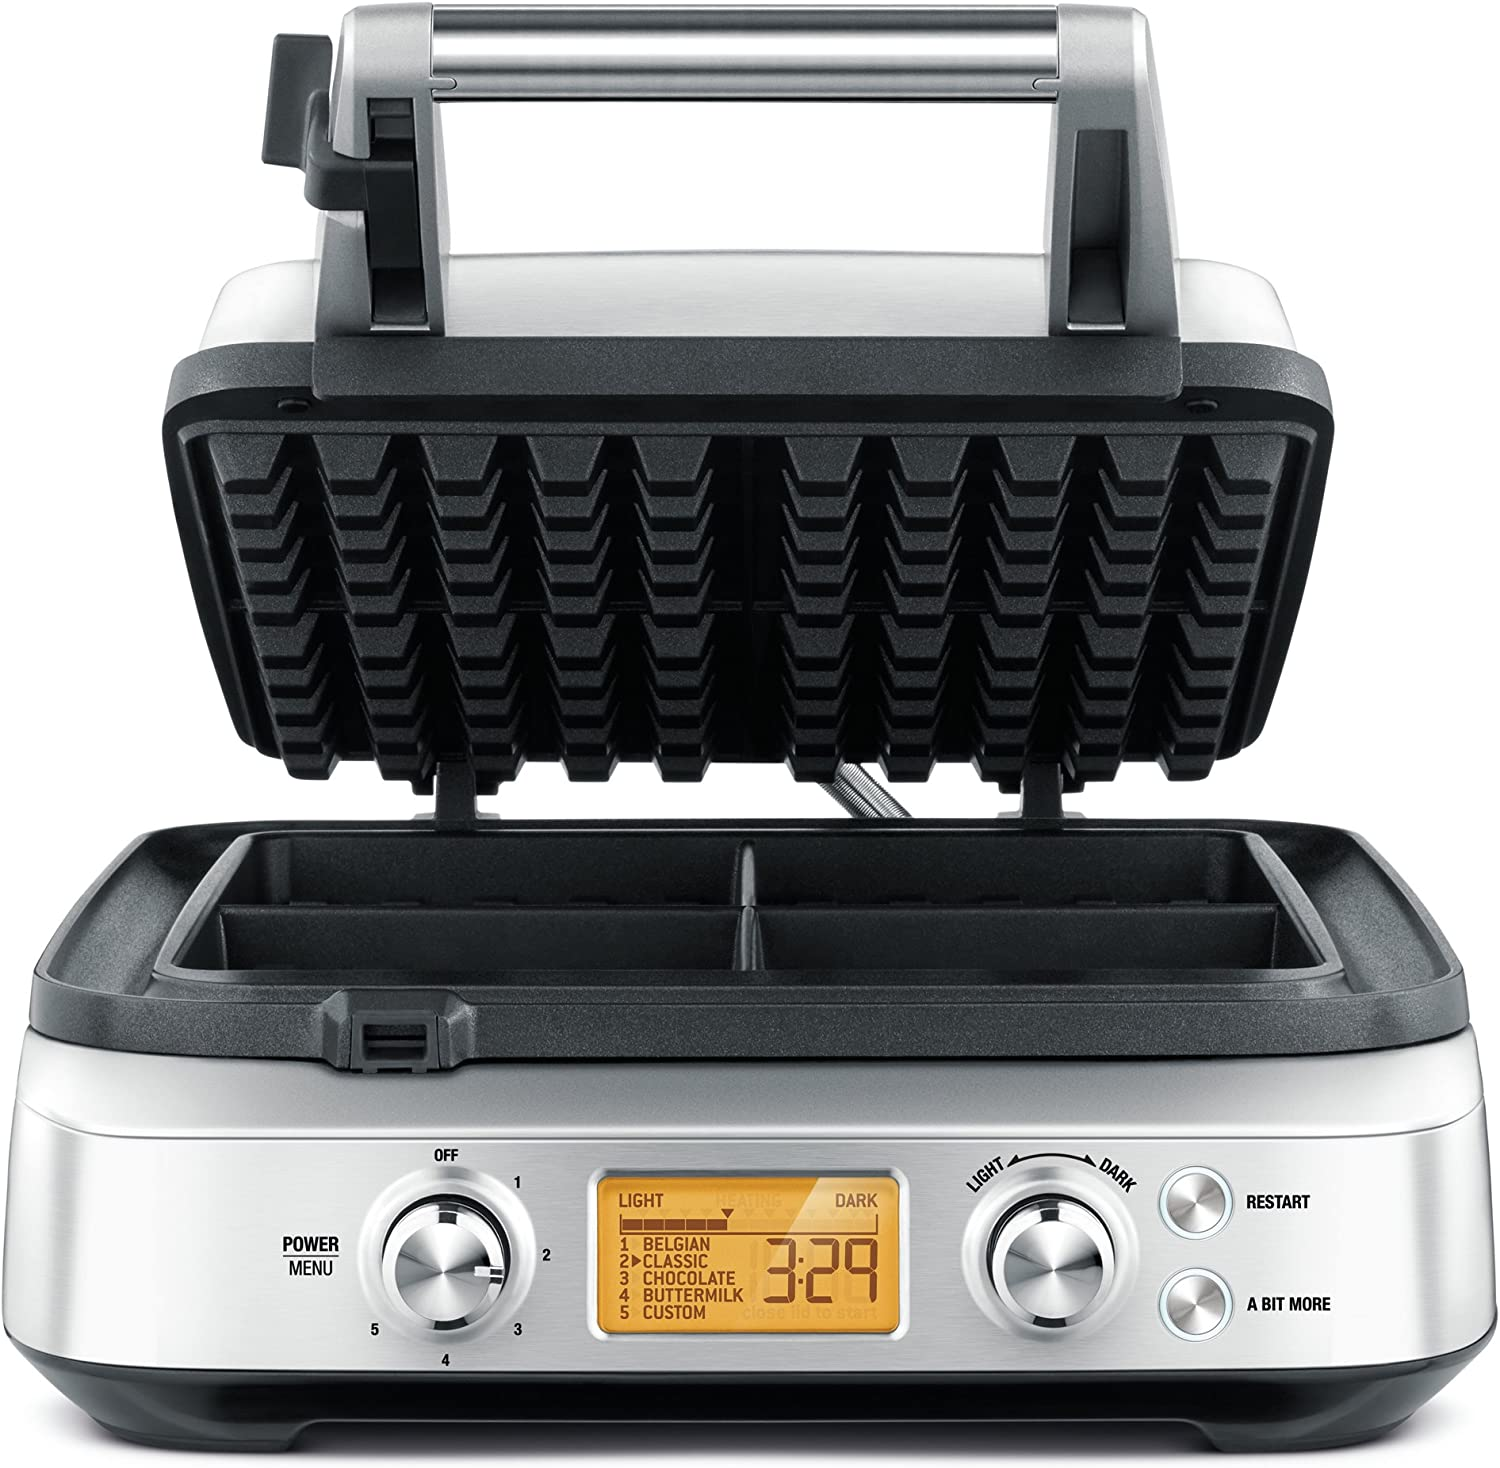 Breville The Smart Waffle Review